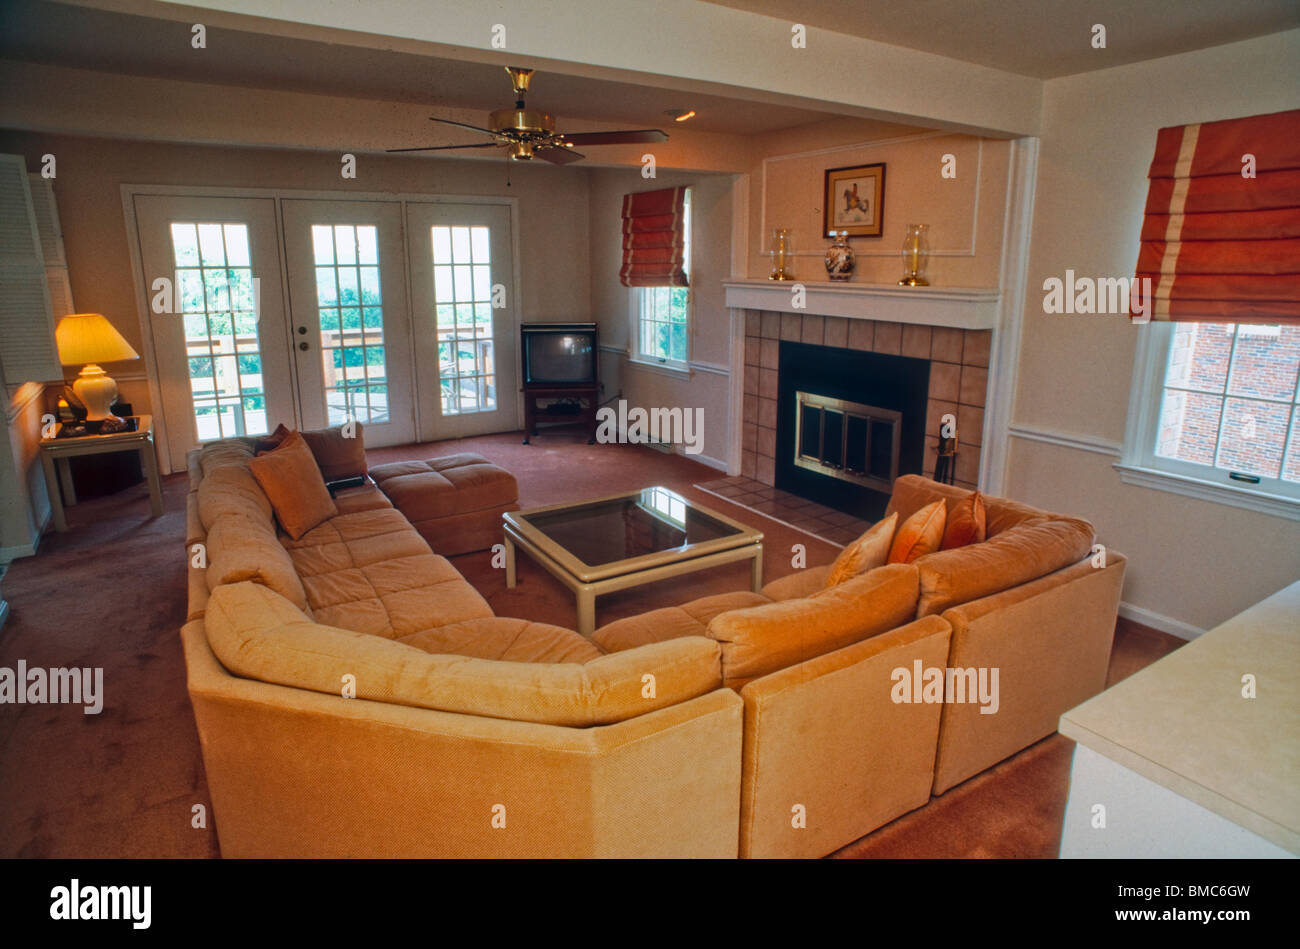 Good American Architecture, Inside Suburban House Living Room   Stock Image